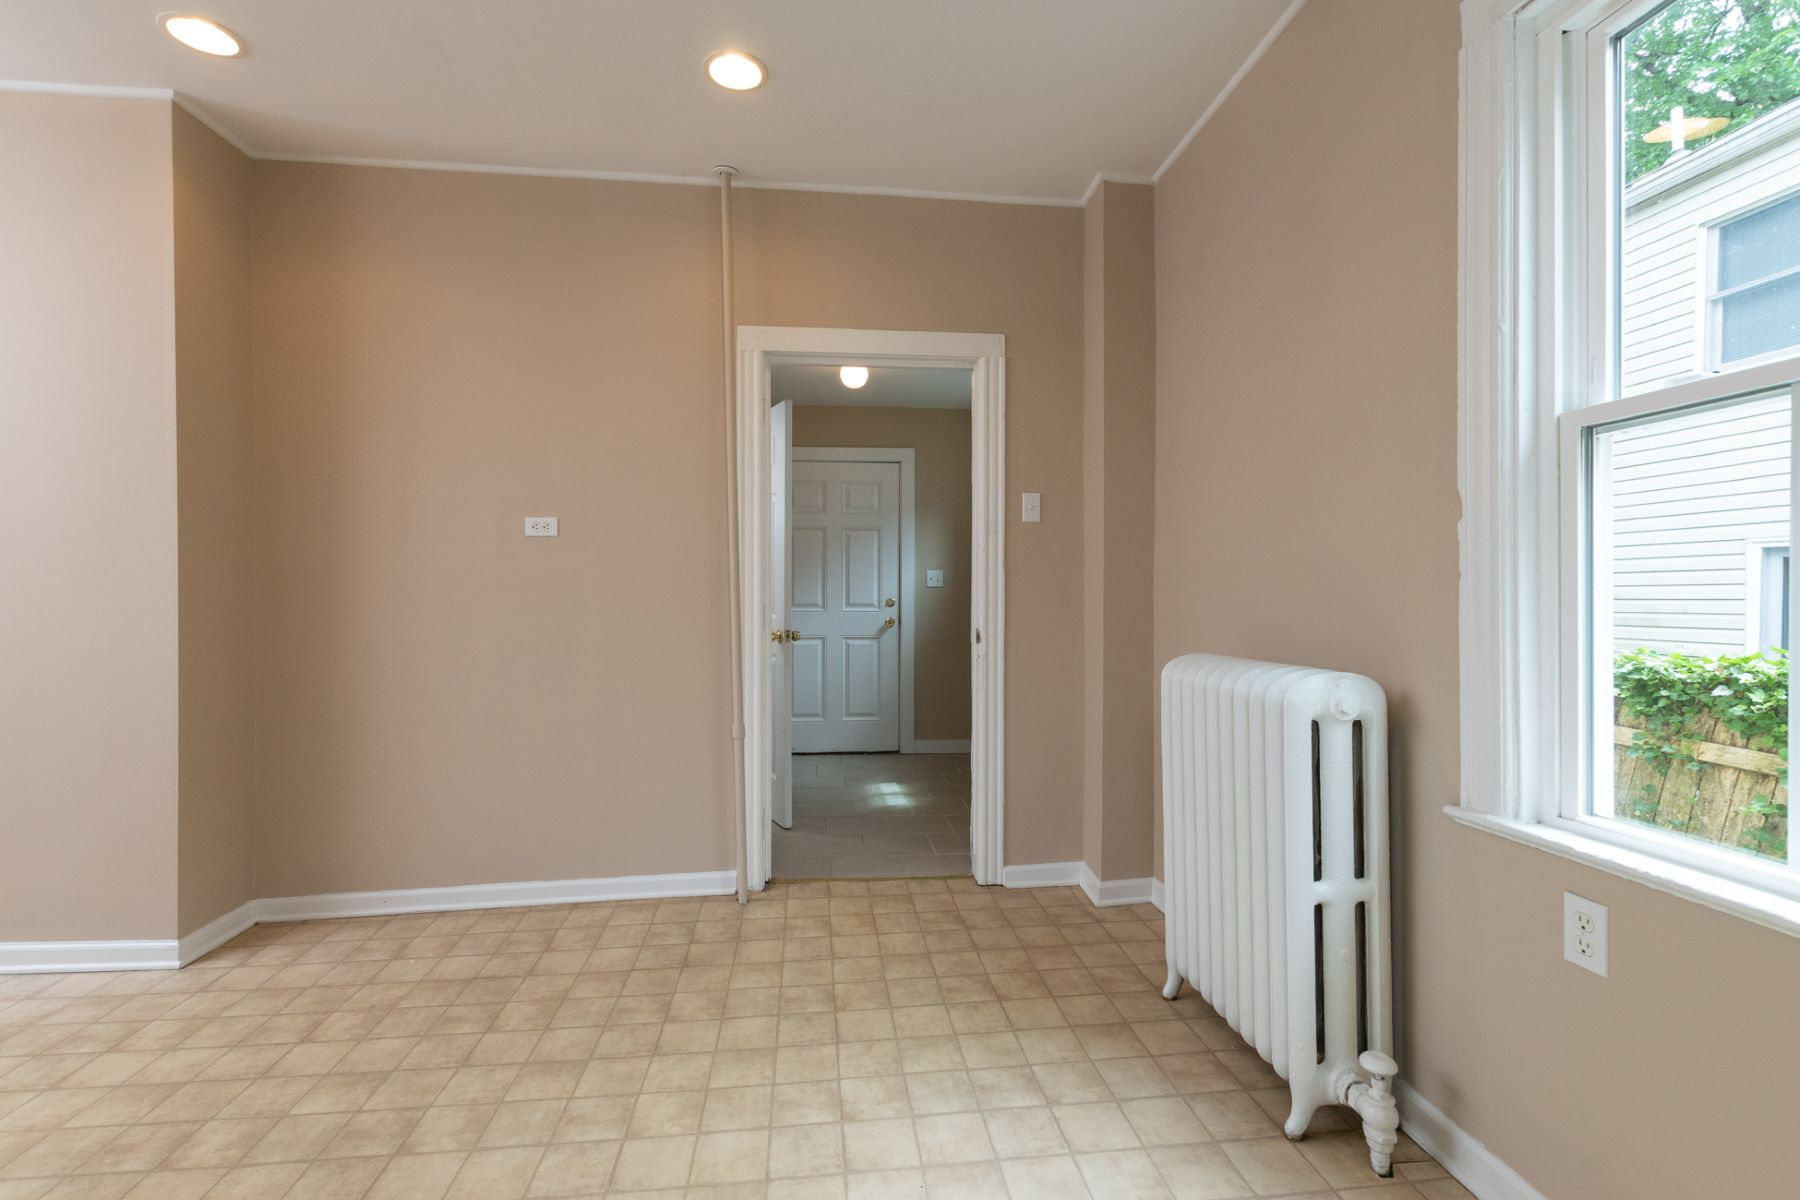 Additional photo for property listing at Freshened In-Town 3-4 Bedroom with 3 Parking Spots 20 Leigh Avenue, Princeton, Nova Jersey 08540 Estados Unidos